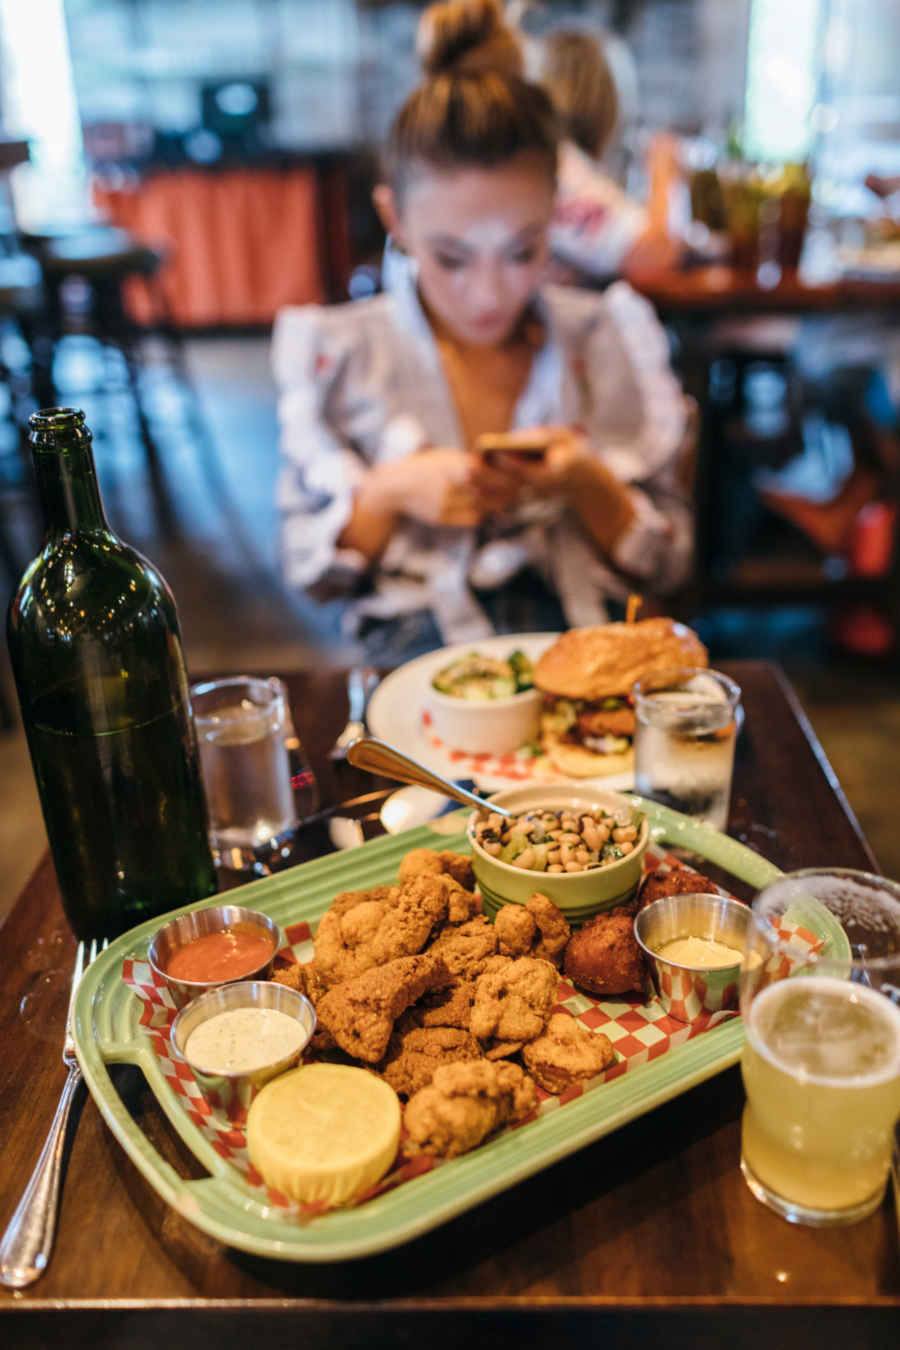 Southern Fried Food - Travel Guide: 36 hours in Charleston, SC // NotJessFashion.com